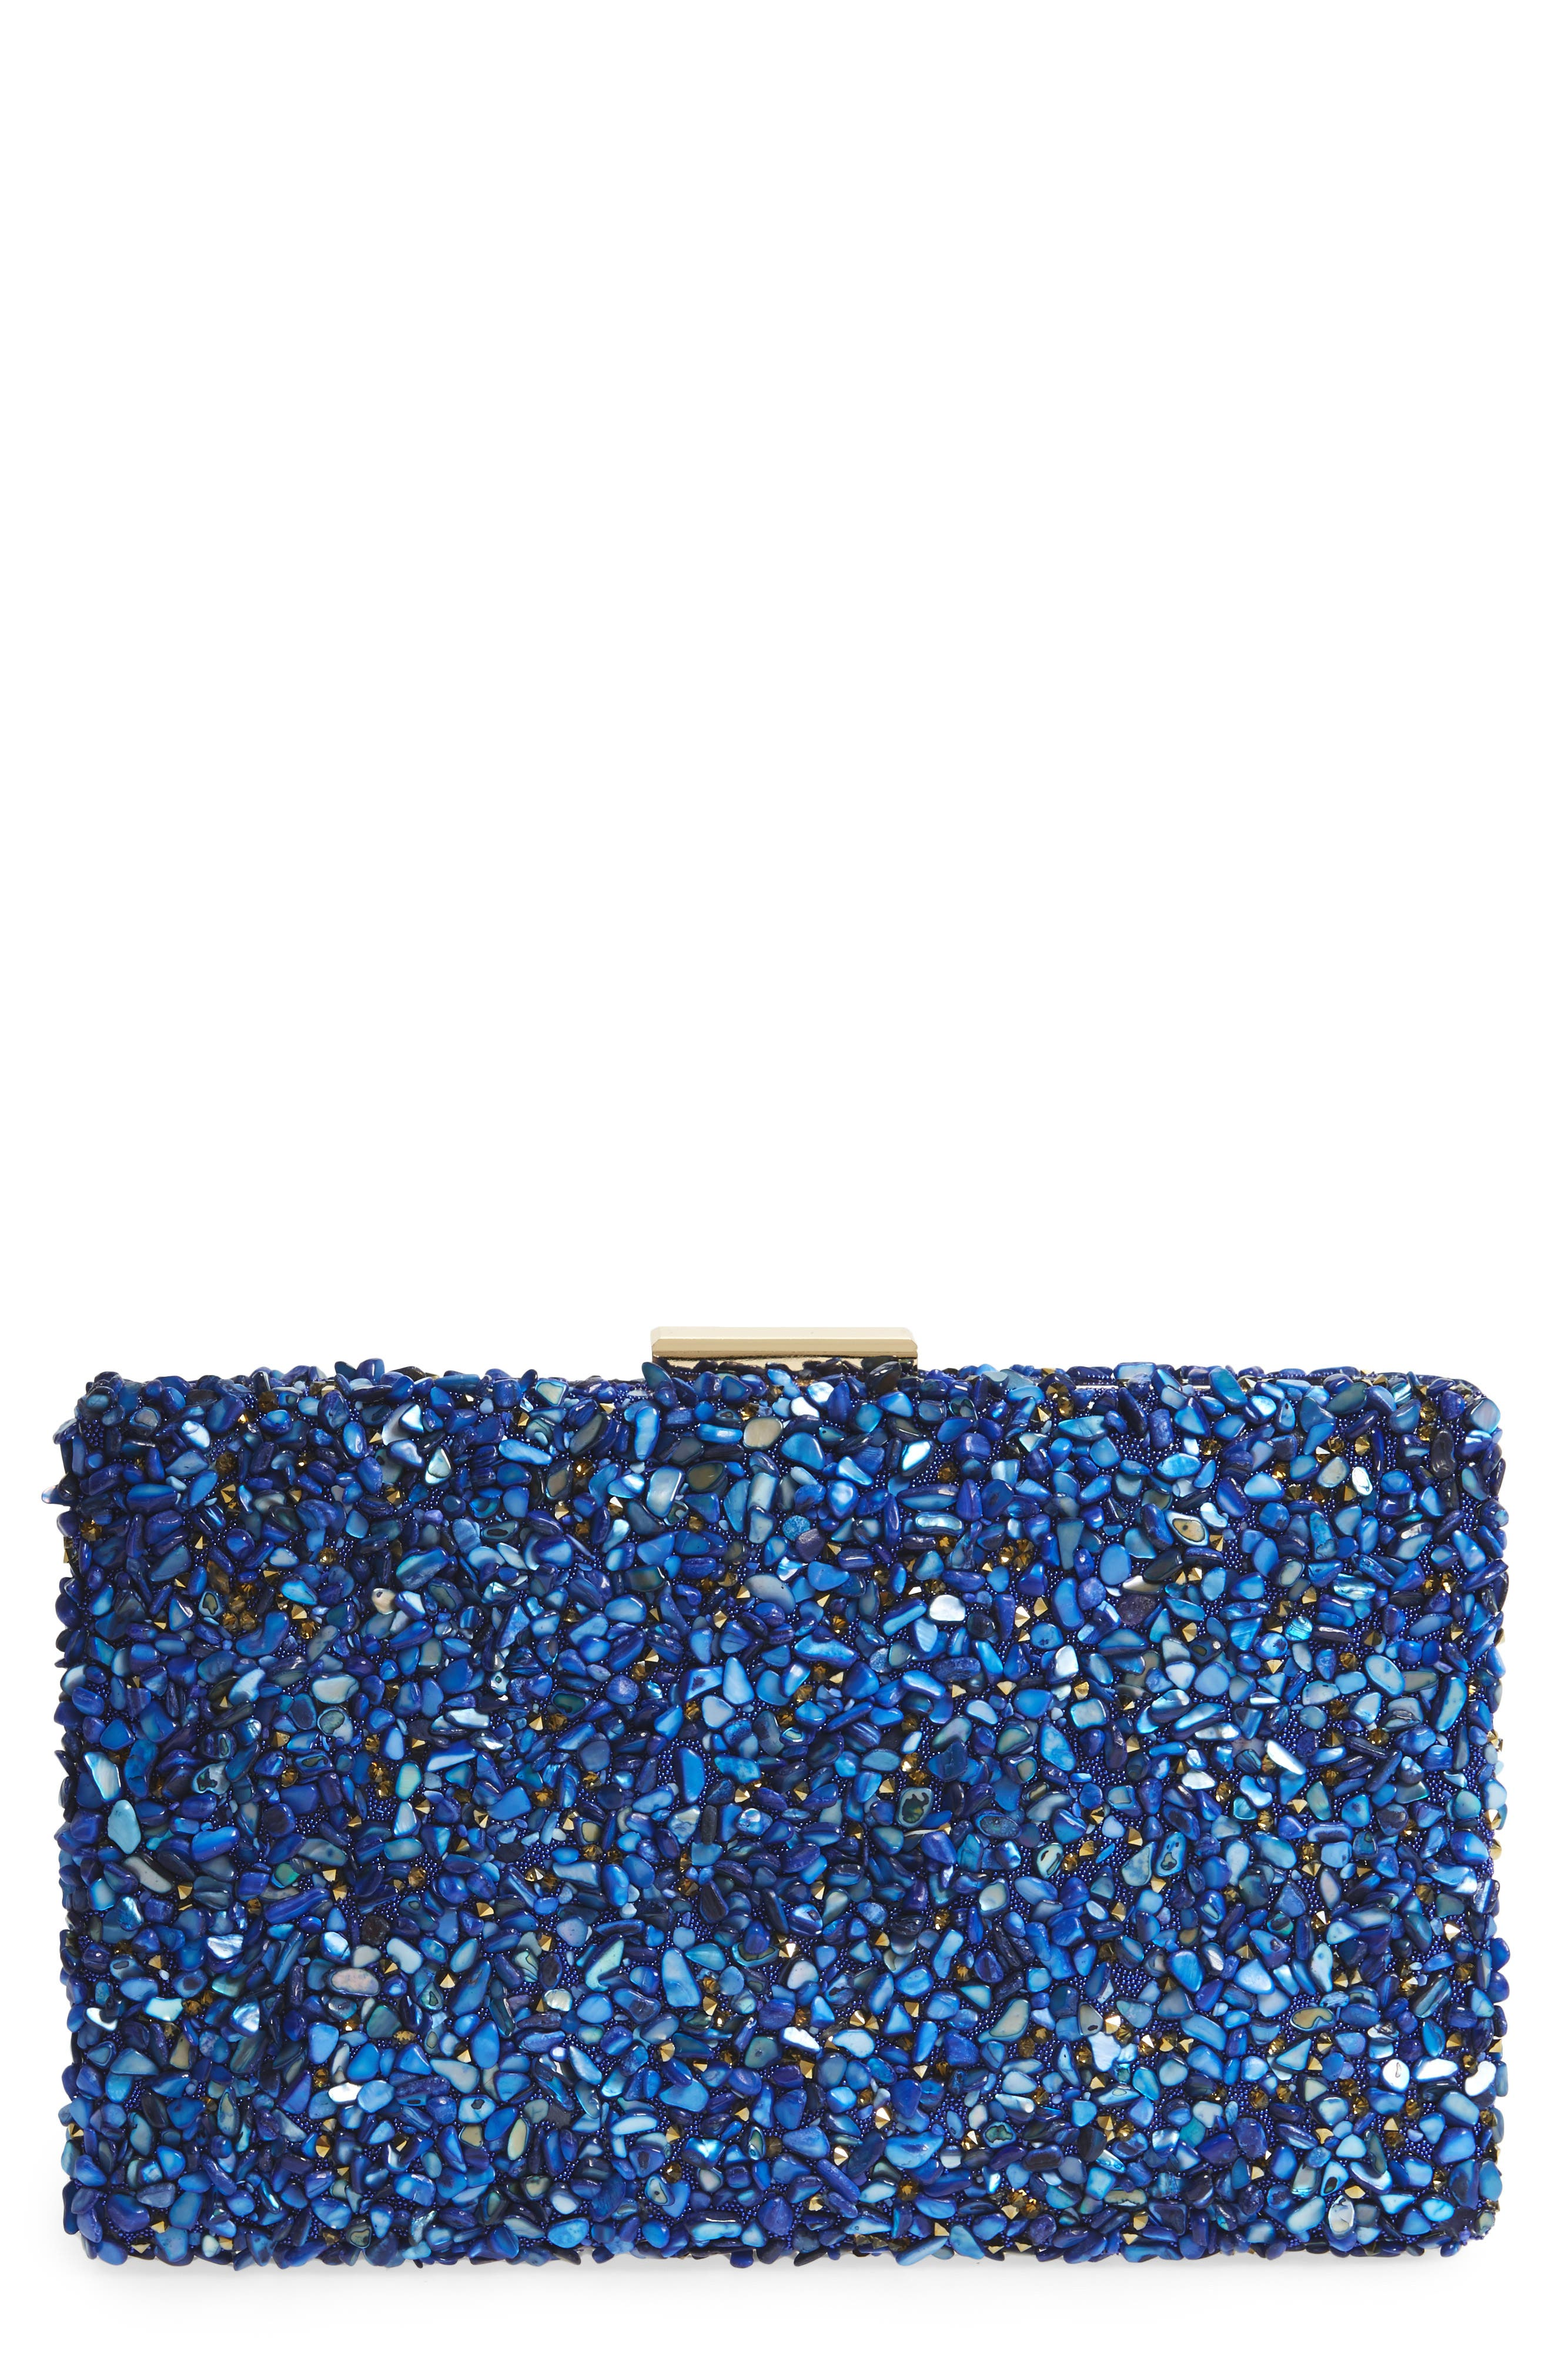 Chips Embellished Box Clutch,                             Main thumbnail 1, color,                             Gold/ Blue